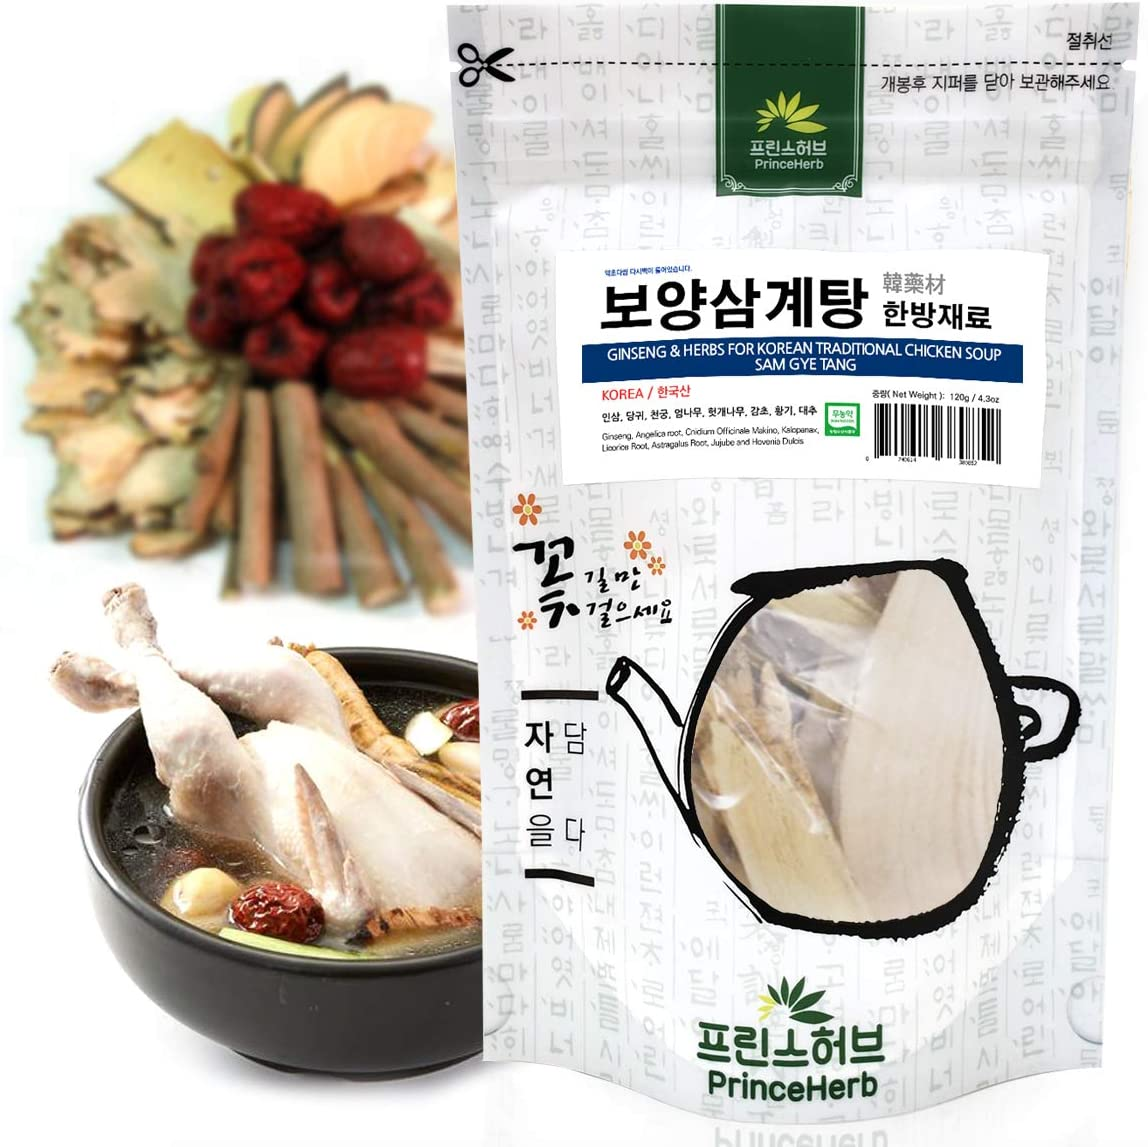 [Medicinal Korean Herb] Ginseng and Medicinal Herbs Mix for Korean Traditional Chicken Soup (Herbs for Sam Gye Tang) / 삼계탕 약재 Dried Bulk Herbs Imported from S. Korea 3oz (86g)